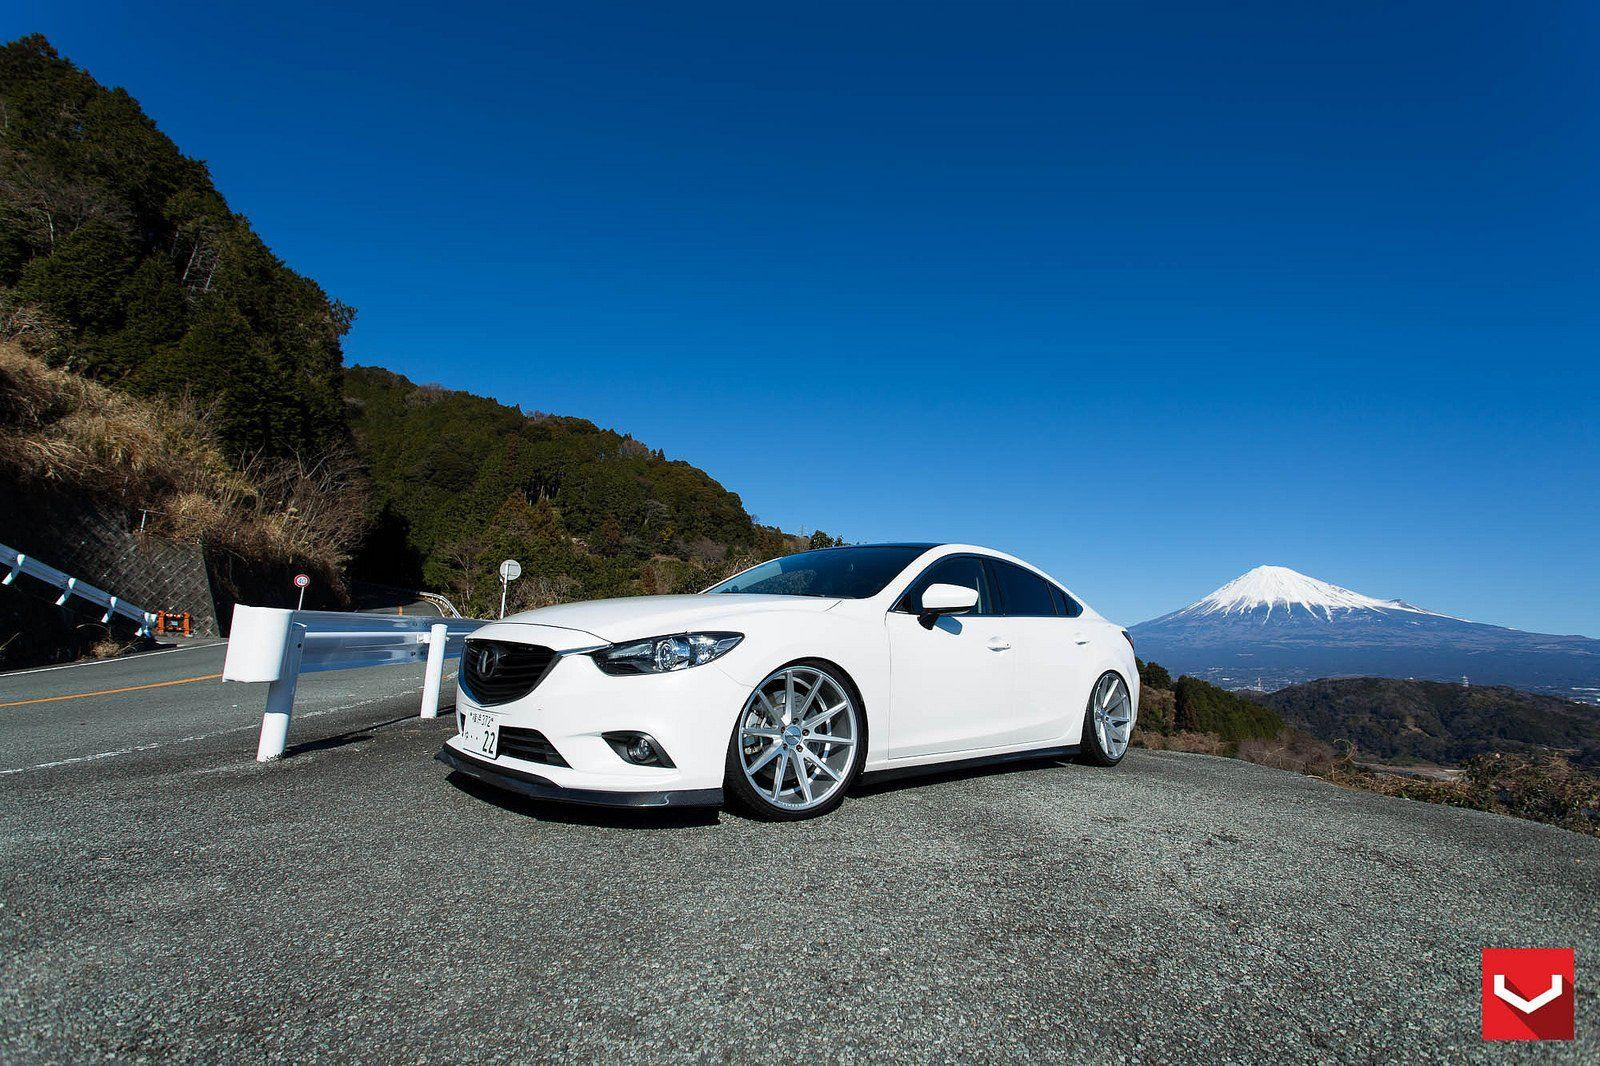 mazda-6 wallpapers | WallpaperUP